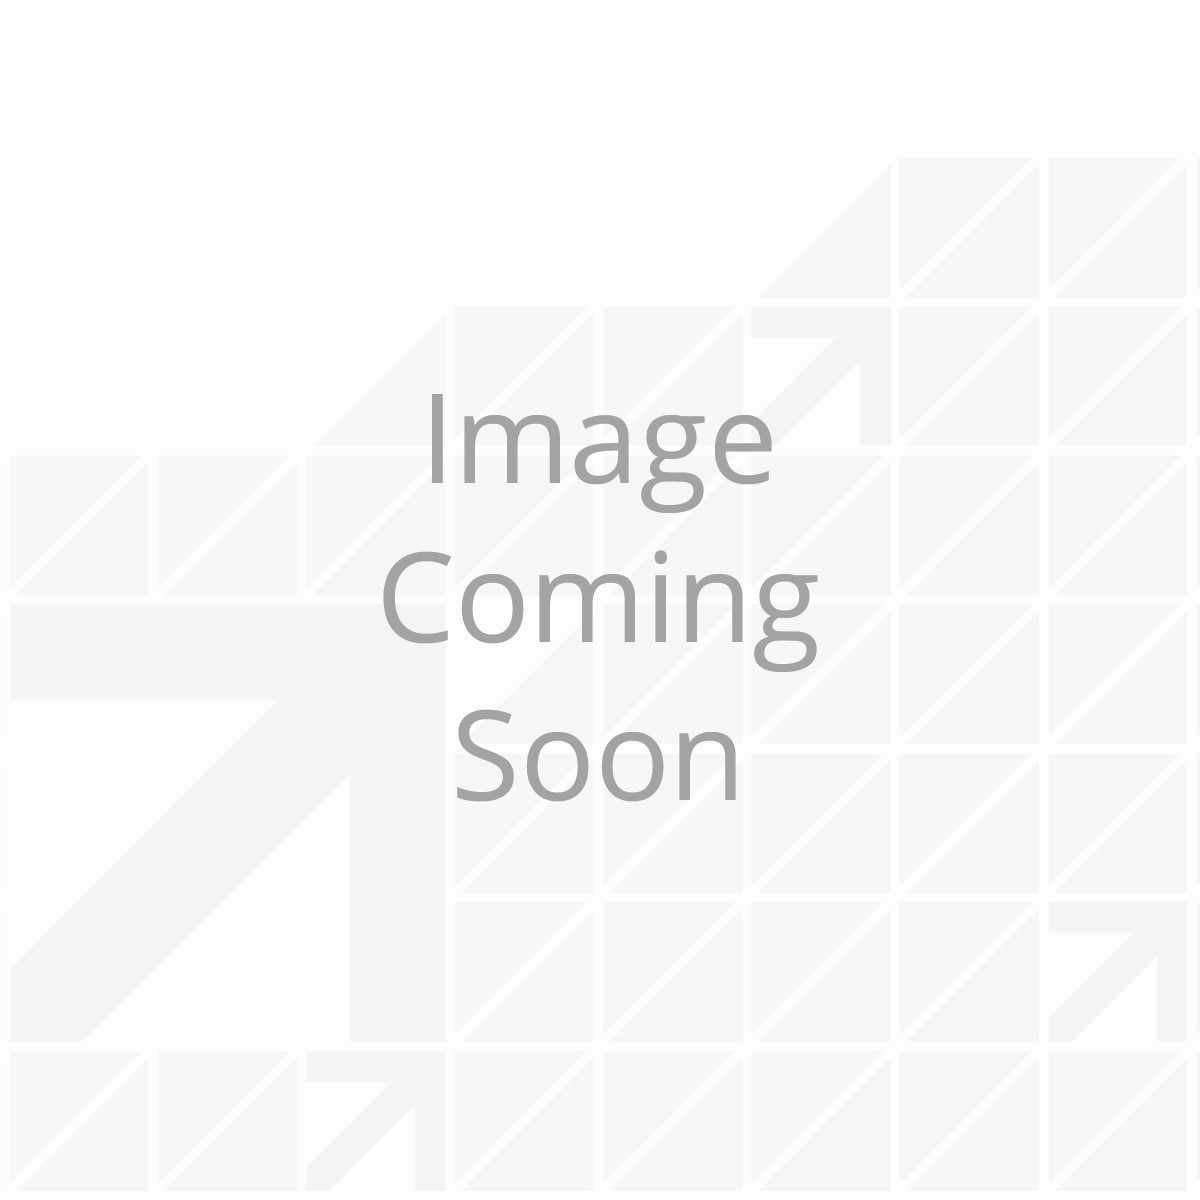 Road Armor™ Shock Absorbing Equalizer - Tandem Axle Kit